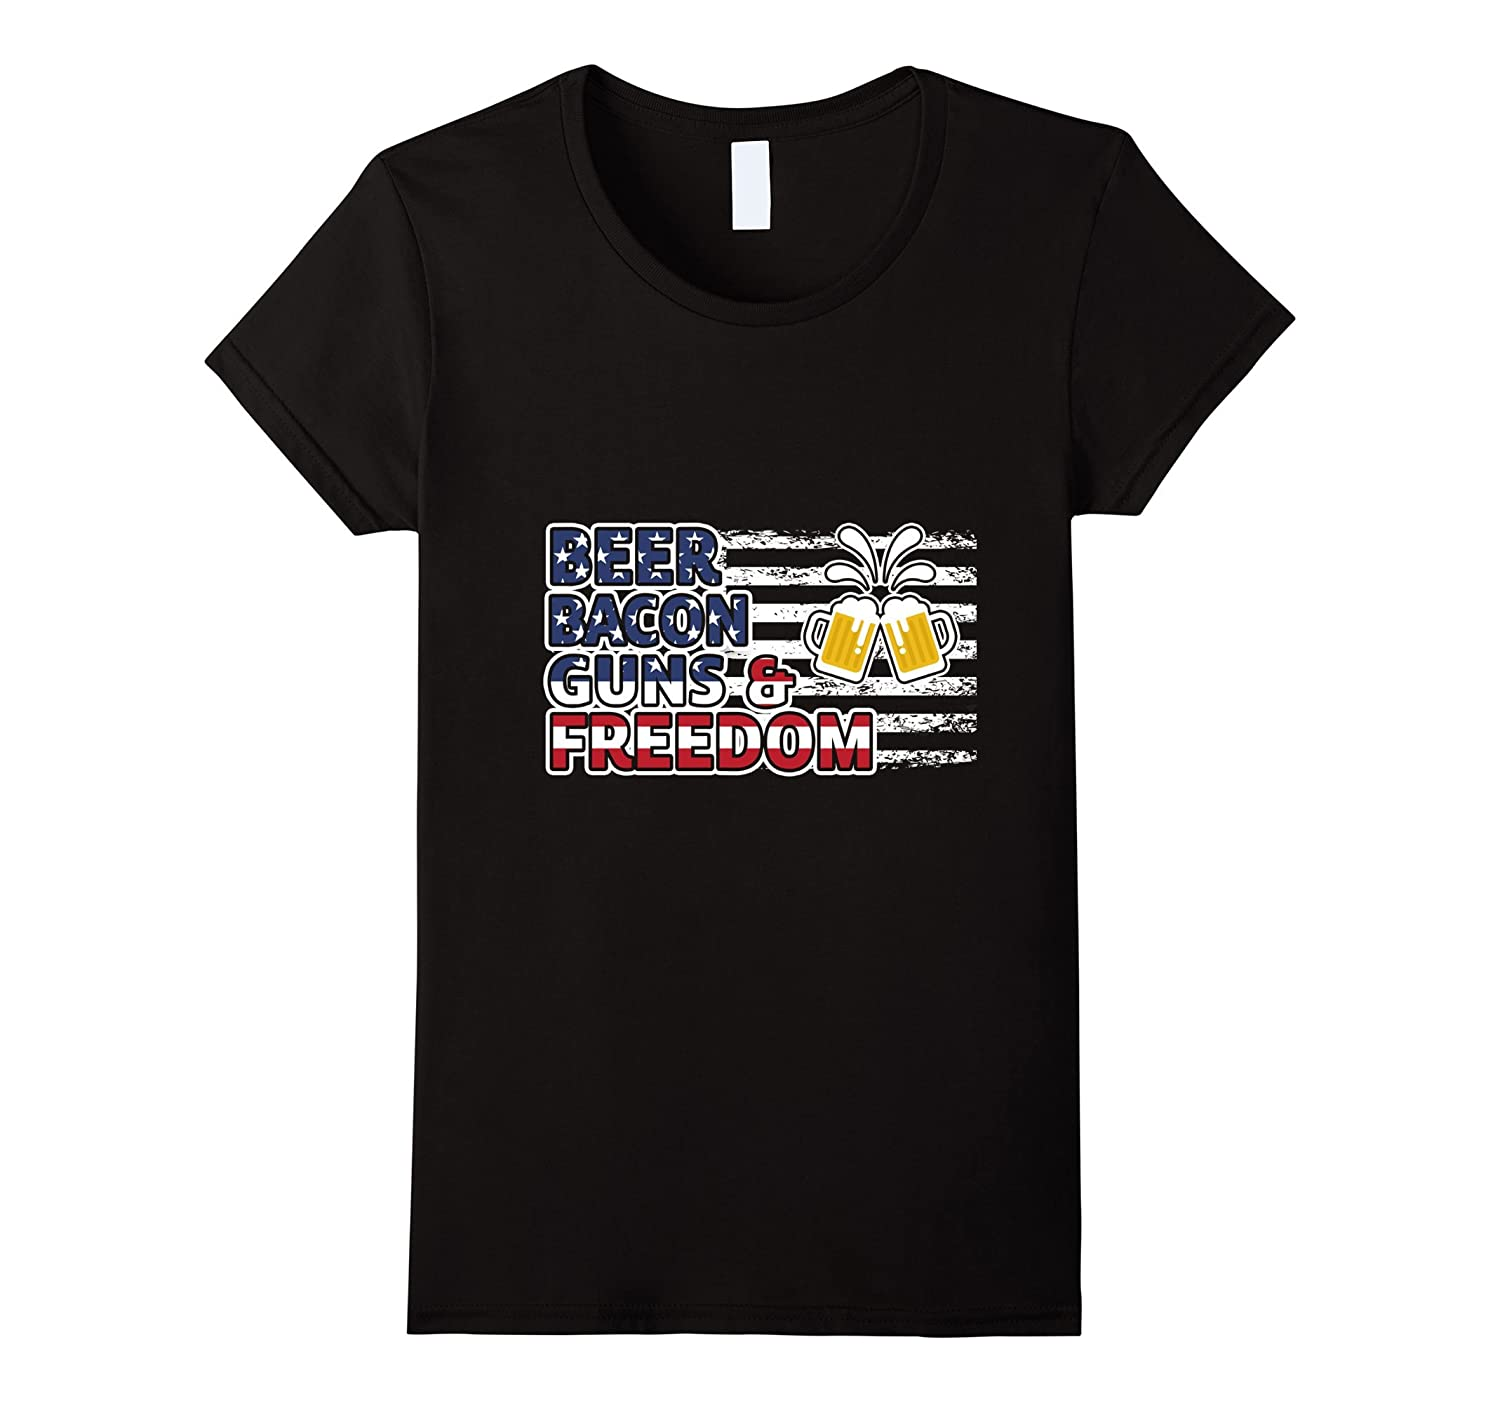 Beer Bacon Guns And Freedom T-Shirt 4th of July Gift